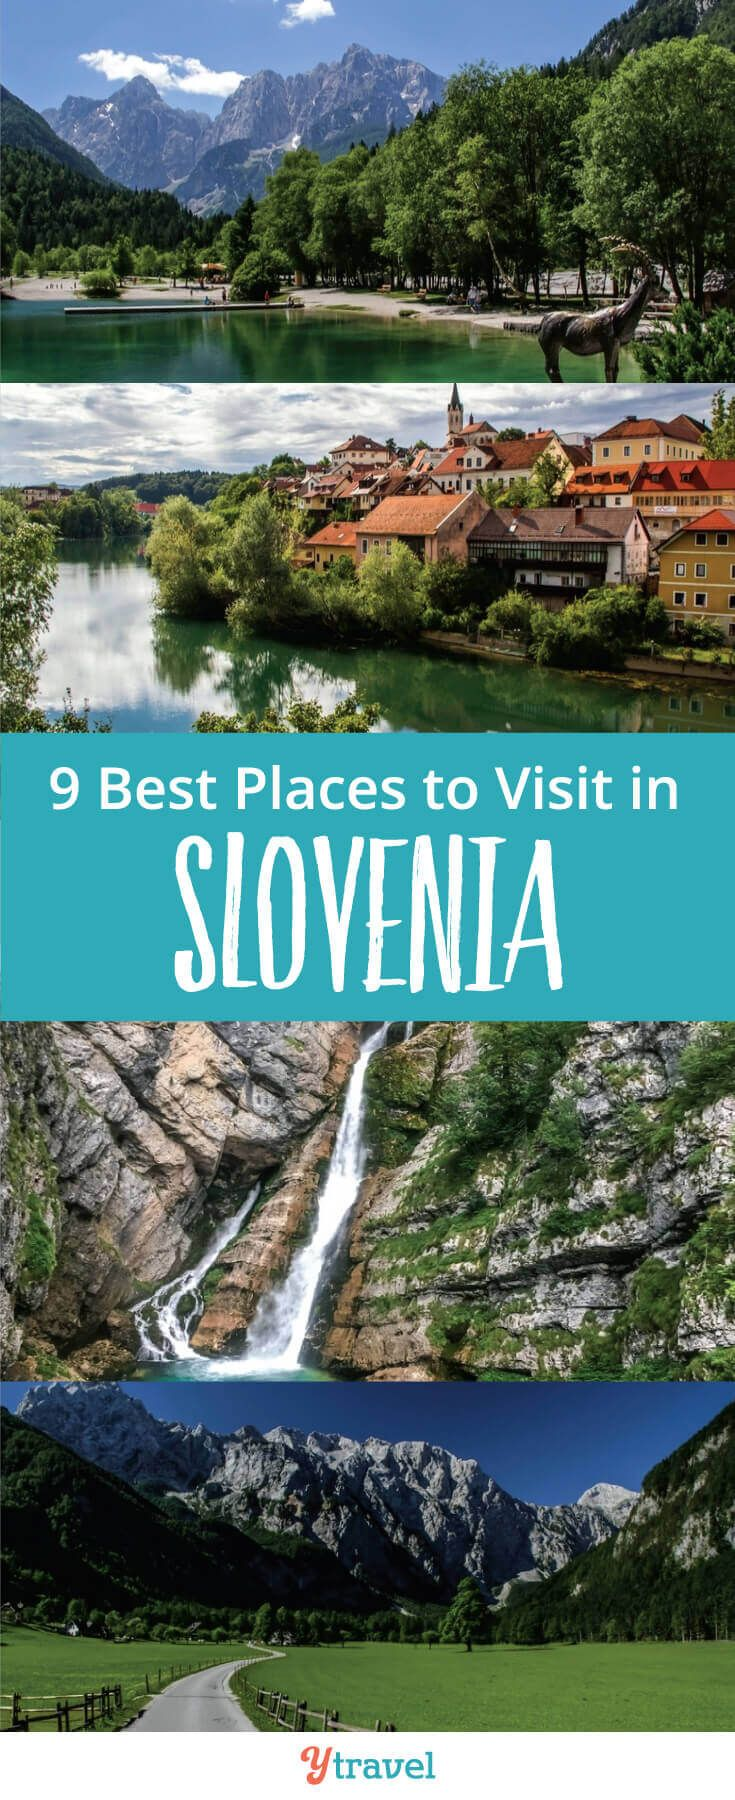 9 of the best places to visit in November 2019 recommendations